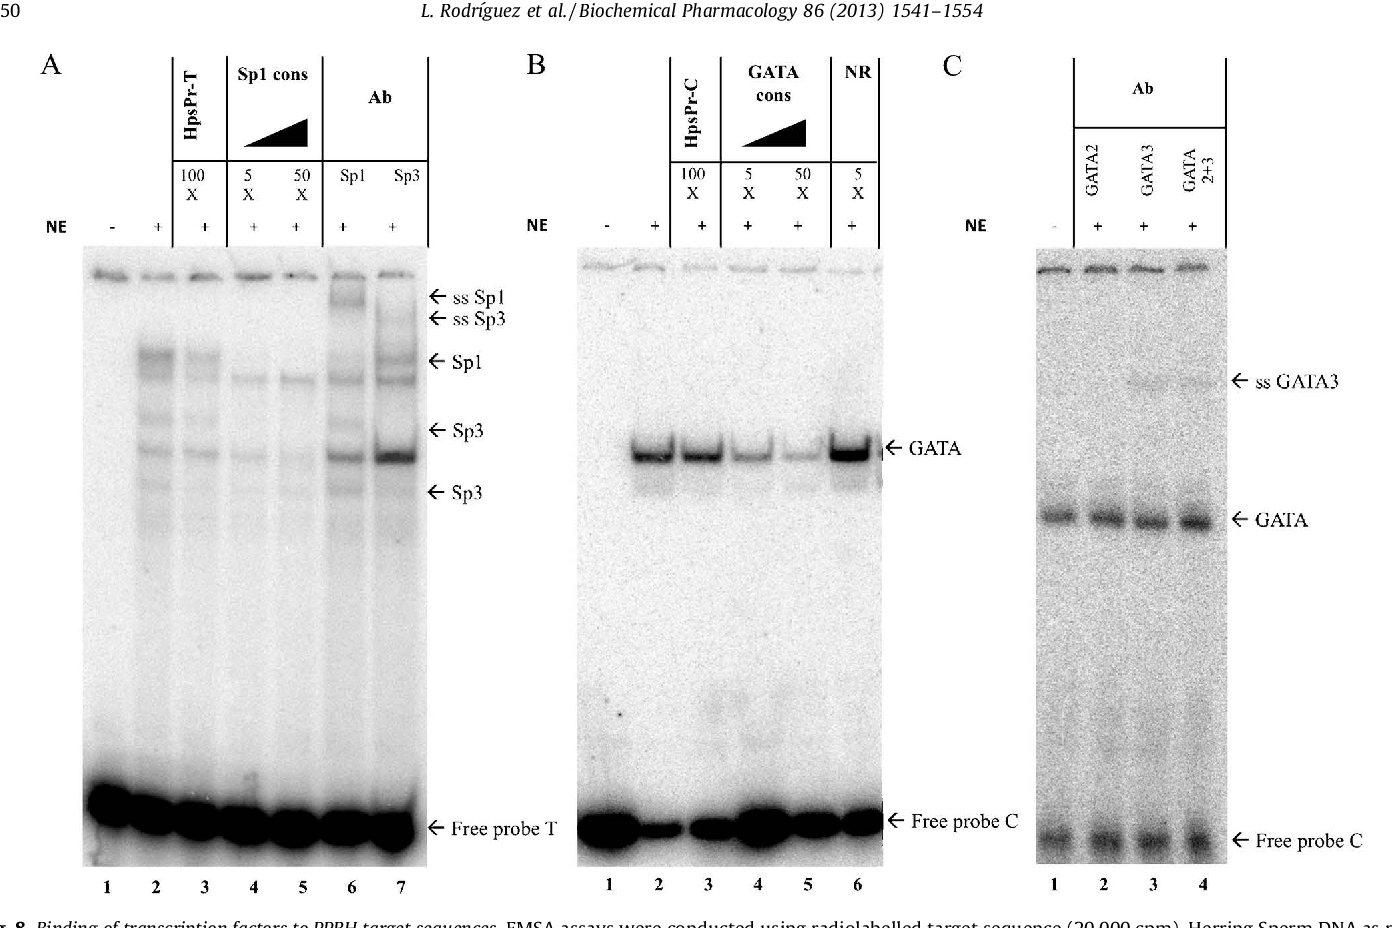 Fig. 8. Binding of transcription factors to PPRH target sequences. EMSA assays were conducted using radiolabelled target sequence (20,000 cpm), Herring Sperm DNA as nonspecific competitor and HeLa nuclear extracts as the protein source. (A) Bindings obtained using radiolabelled ds-target sequence for HpsPr-T. The binding pattern using HeLa nuclear extracts is shown in lane 2. Competition assays were performed using a 100-fold excess of HpsPr-T (lane 3) or a 5 to 50-fold excess of Sp1/3 consensus sequence (lanes 4 and 5). Supershift assays were performed four times in the presence of antibodies against Sp1 (lane 6) or Sp3 (lane 7). Shifted and supershifted (ss) bands are indicated by arrows. (B) Bindings obtained using radiolabelled ds-target sequence for HpsPr-C. The binding pattern using HeLa nuclear extracts is shown in lane 2. Competition assays were performed using a 100-fold excess of HpsPr-C (lane 3), a 5 to 50-fold excess of GATA consensus sequence (lanes 4 and 5) and a 50-fold excess of a non-related sequence (lane 6). Shifted bands are indicated by arrows. (C) Supershift assays were performed four times in the presence of antibodies against GATA-2 (lane 2), GATA-3 (lane 3) and both antibodies (lane 4). The supershifted (ss) band is indicated by an arrow.